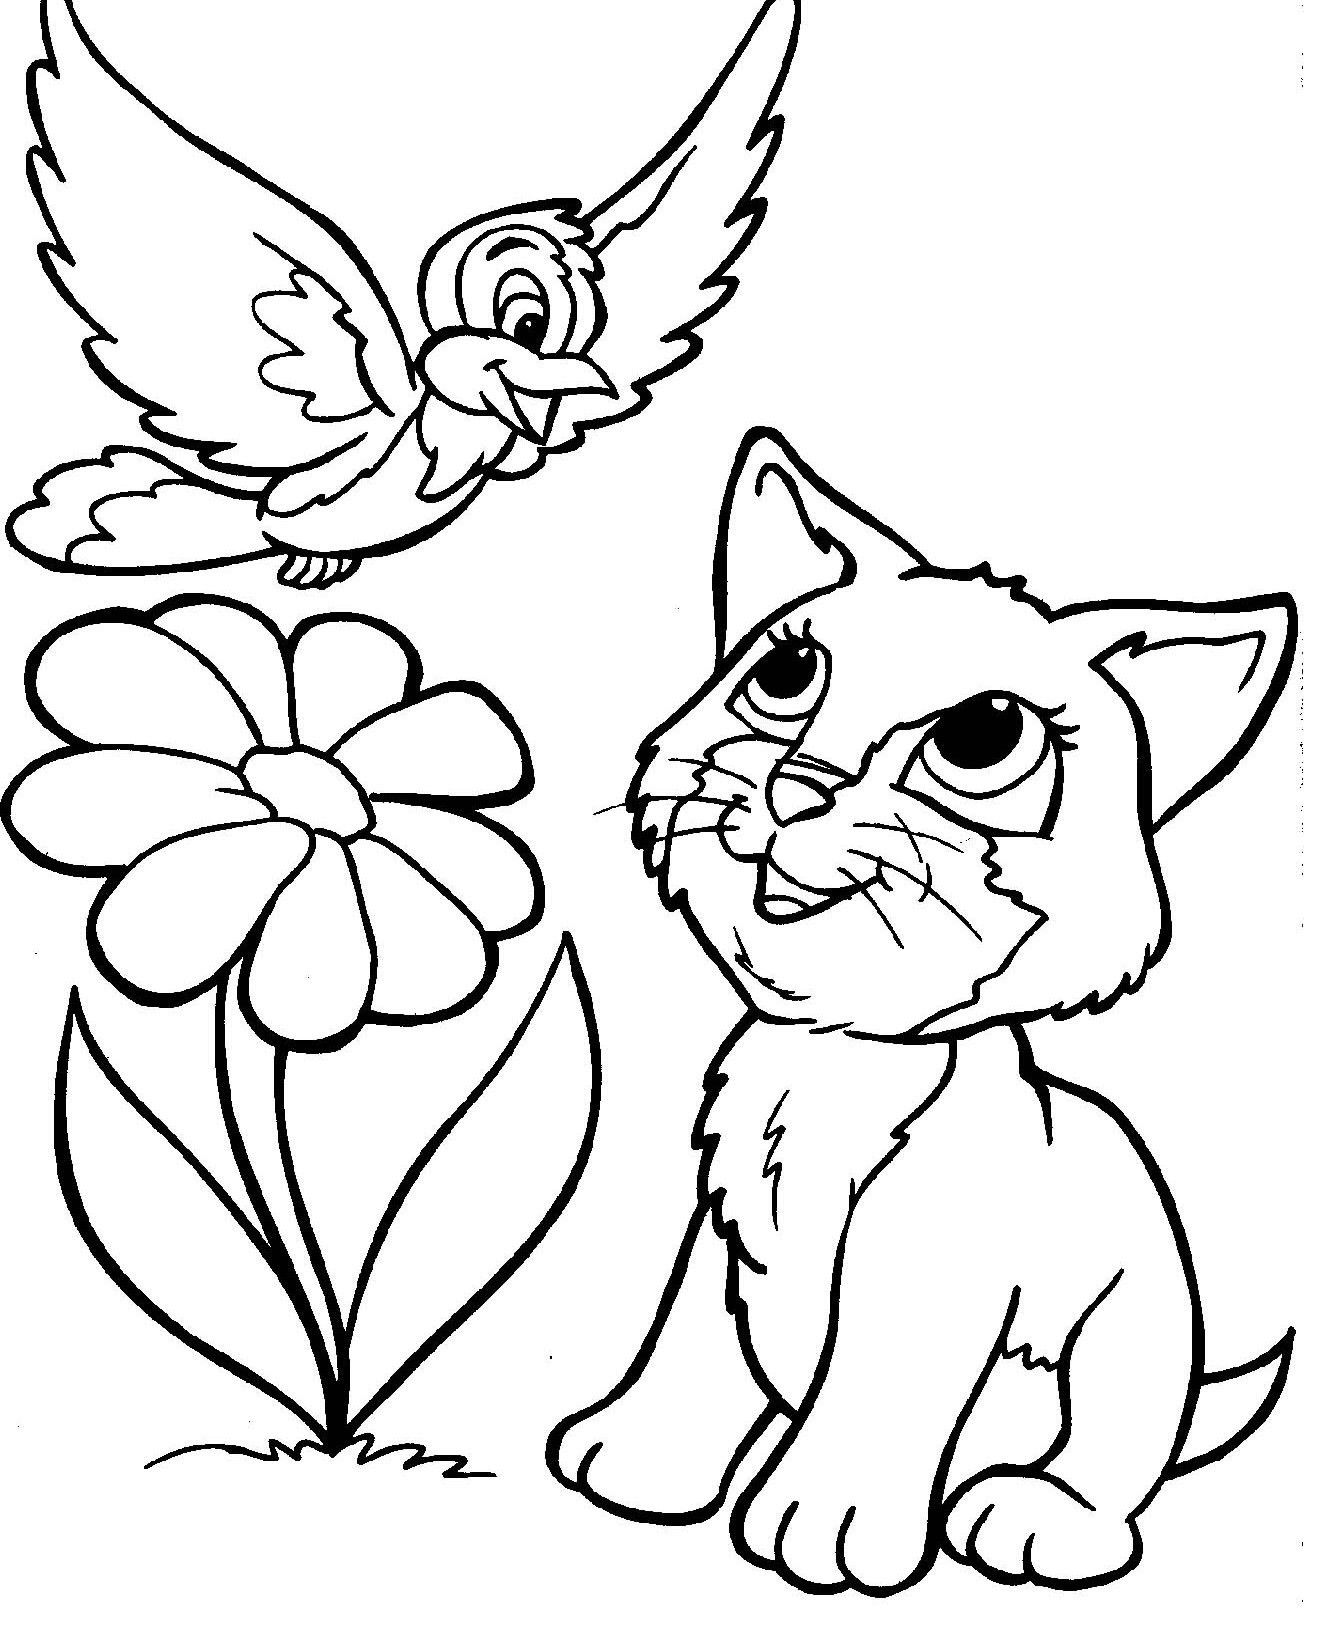 Kitty Cat Coloring Pages Cat Coloring Page Kittens Coloring